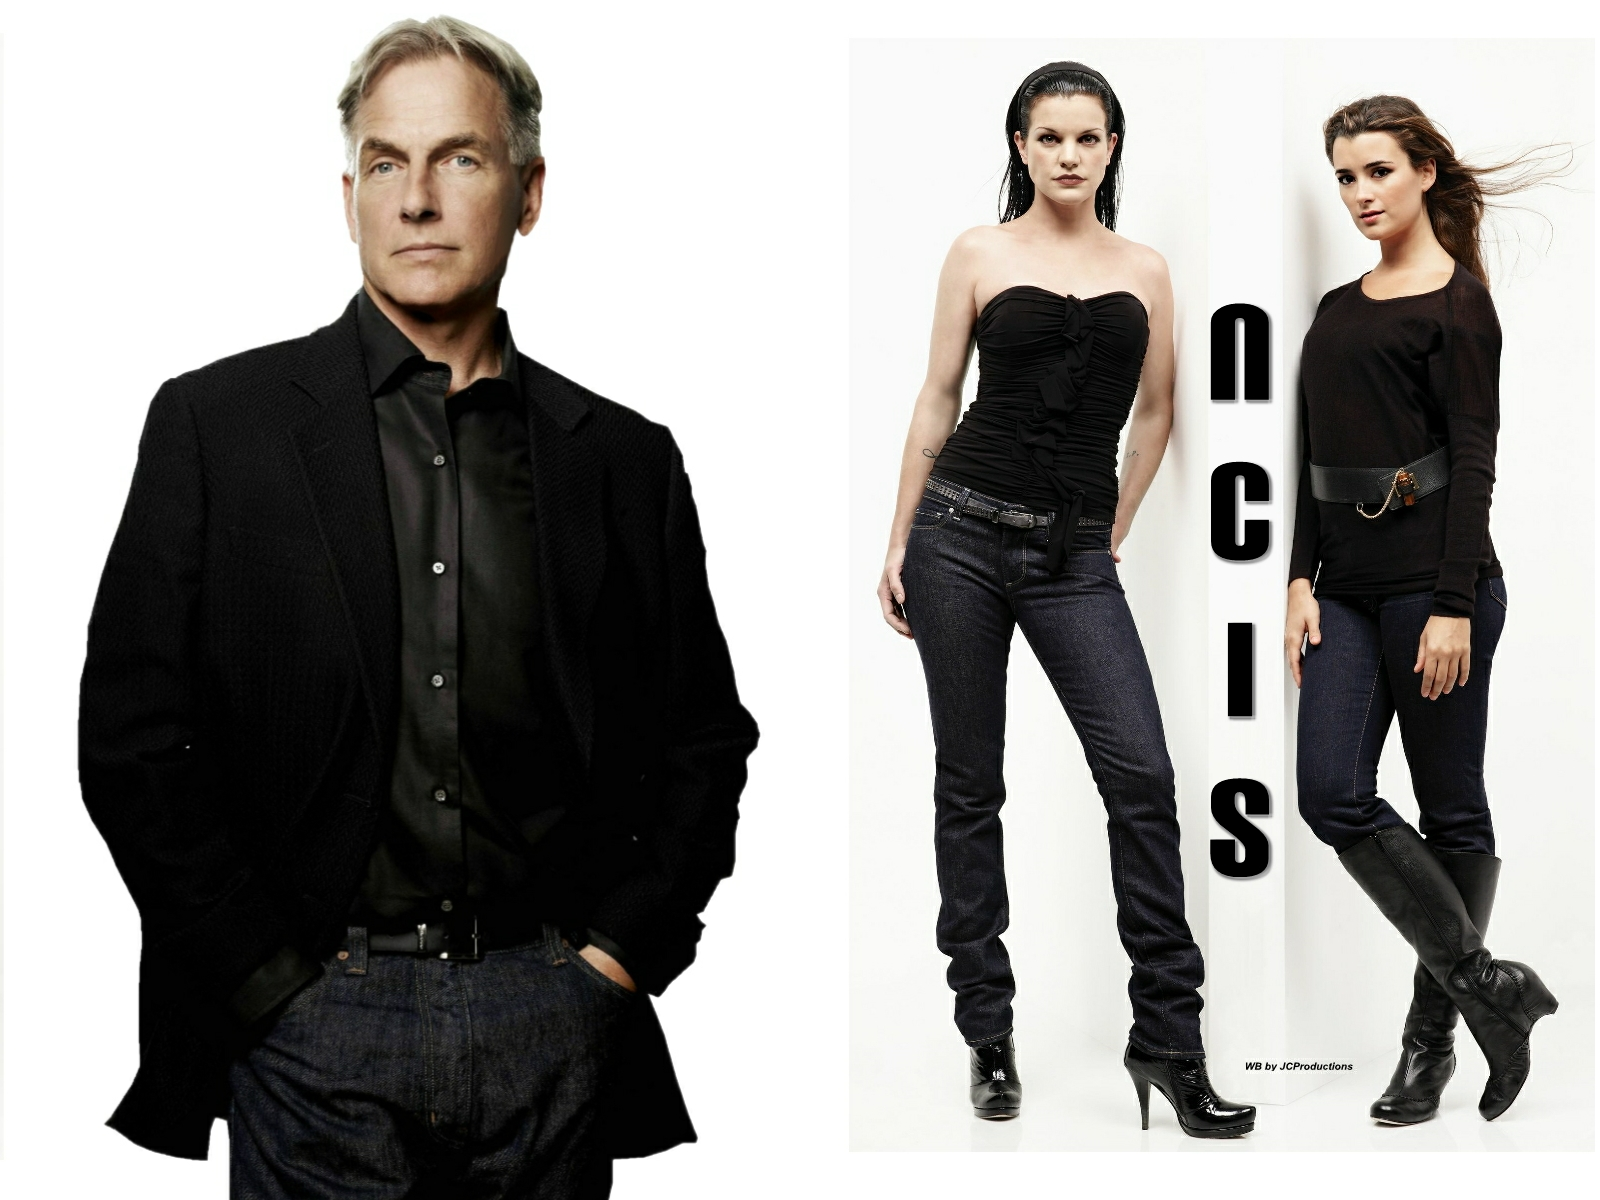 Ncis Abby Wallpaper (53+ images)